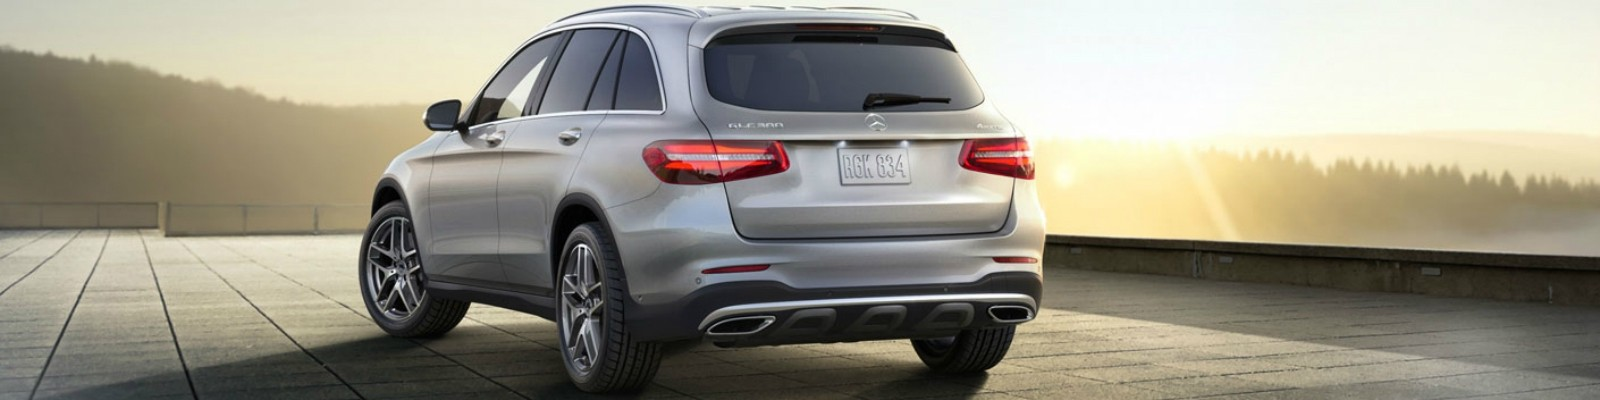 2018 Mercedes-Benz GLC back end